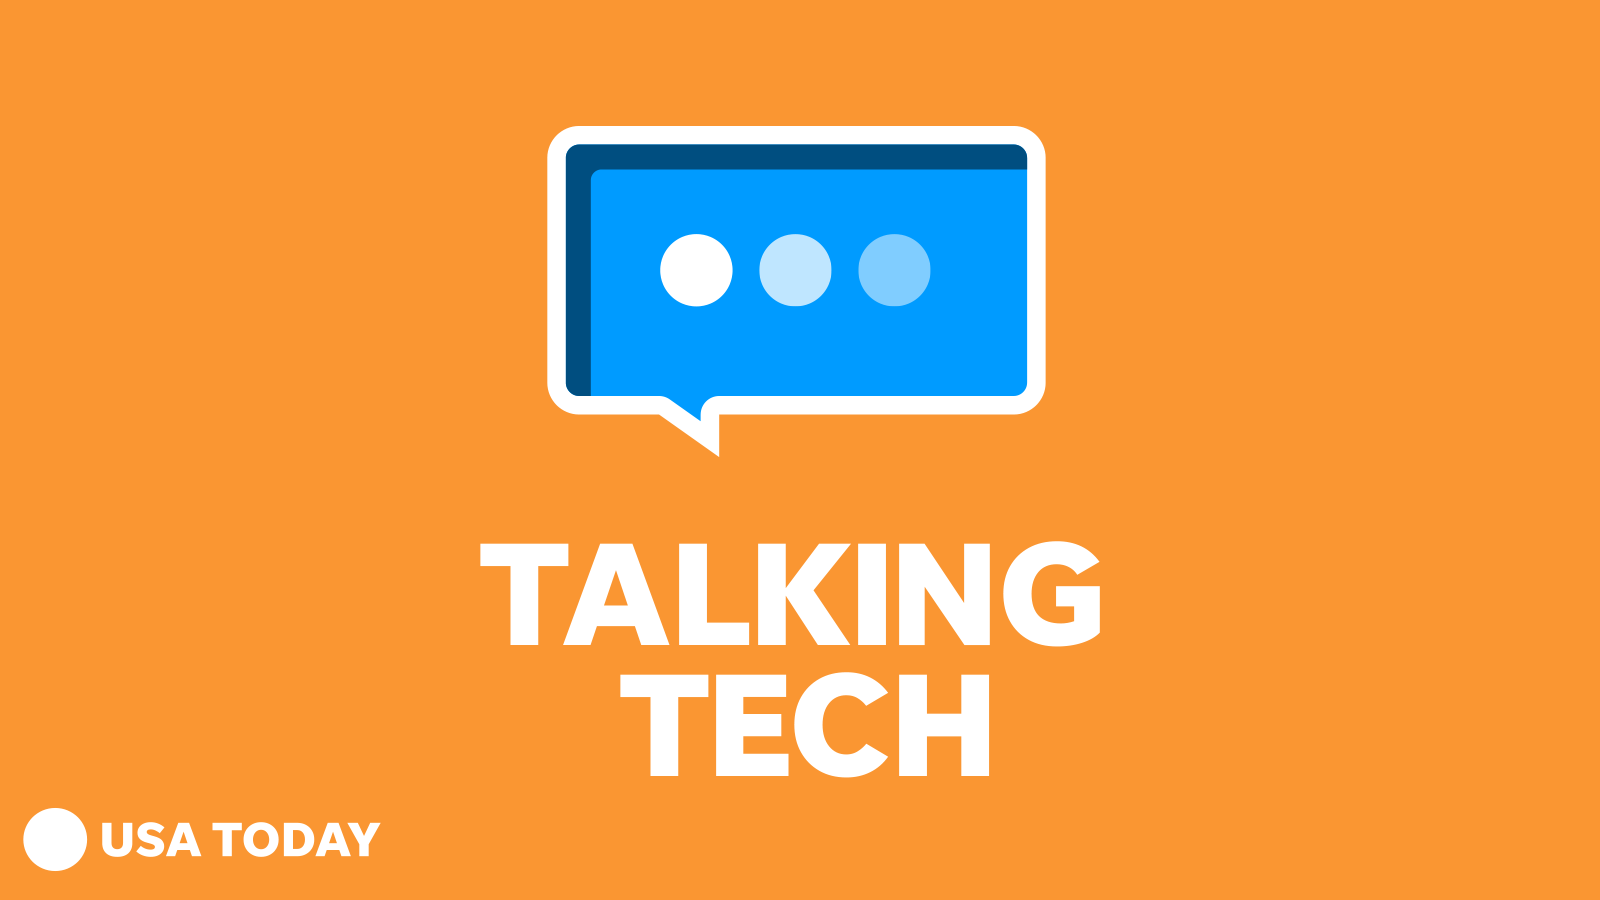 Listen to the Talking Tech podcast